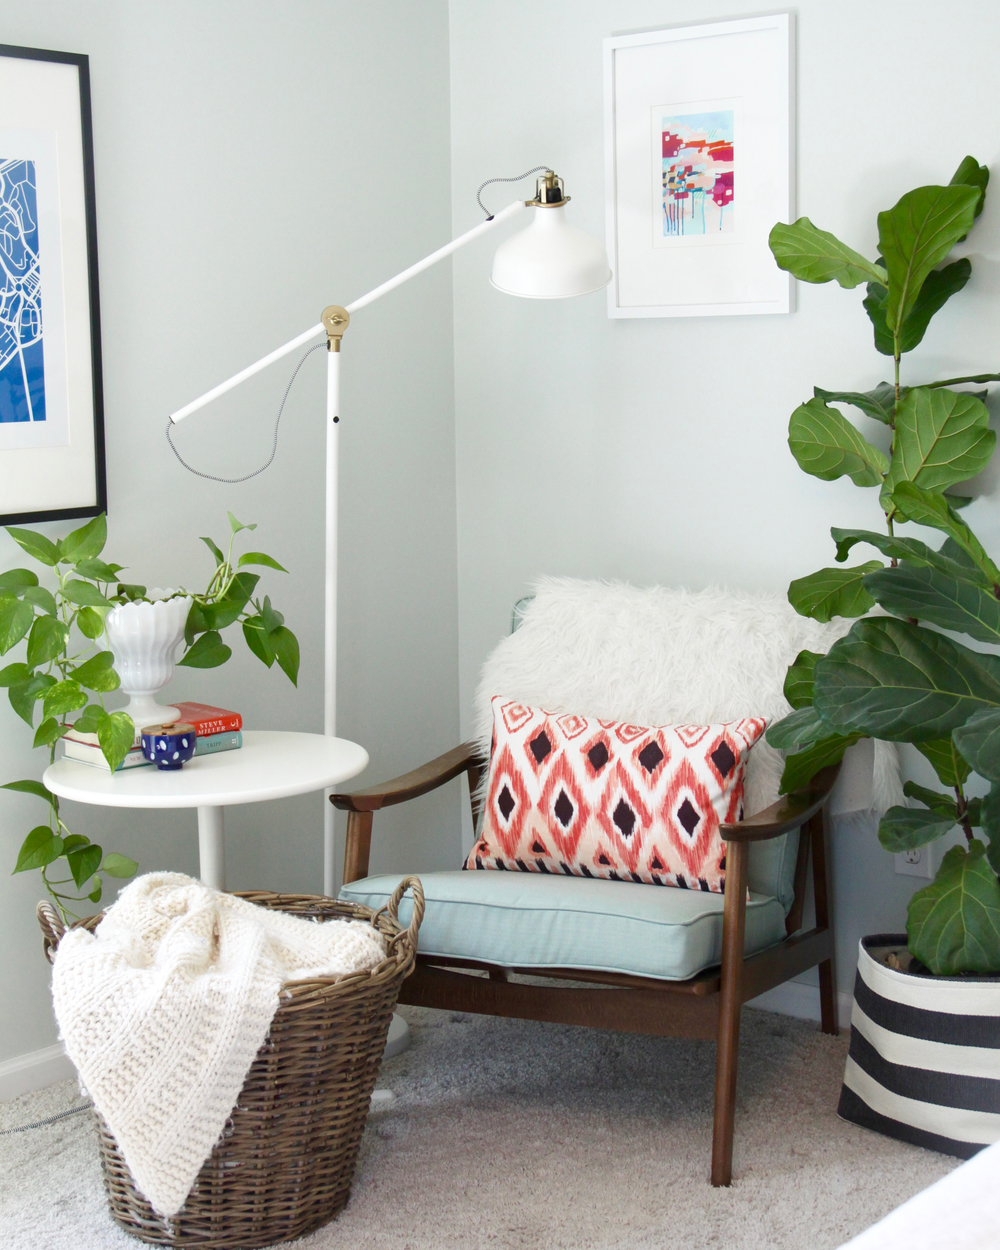 Midcentury Chair in Bedroom Corner with Fiddle Leaf Fig